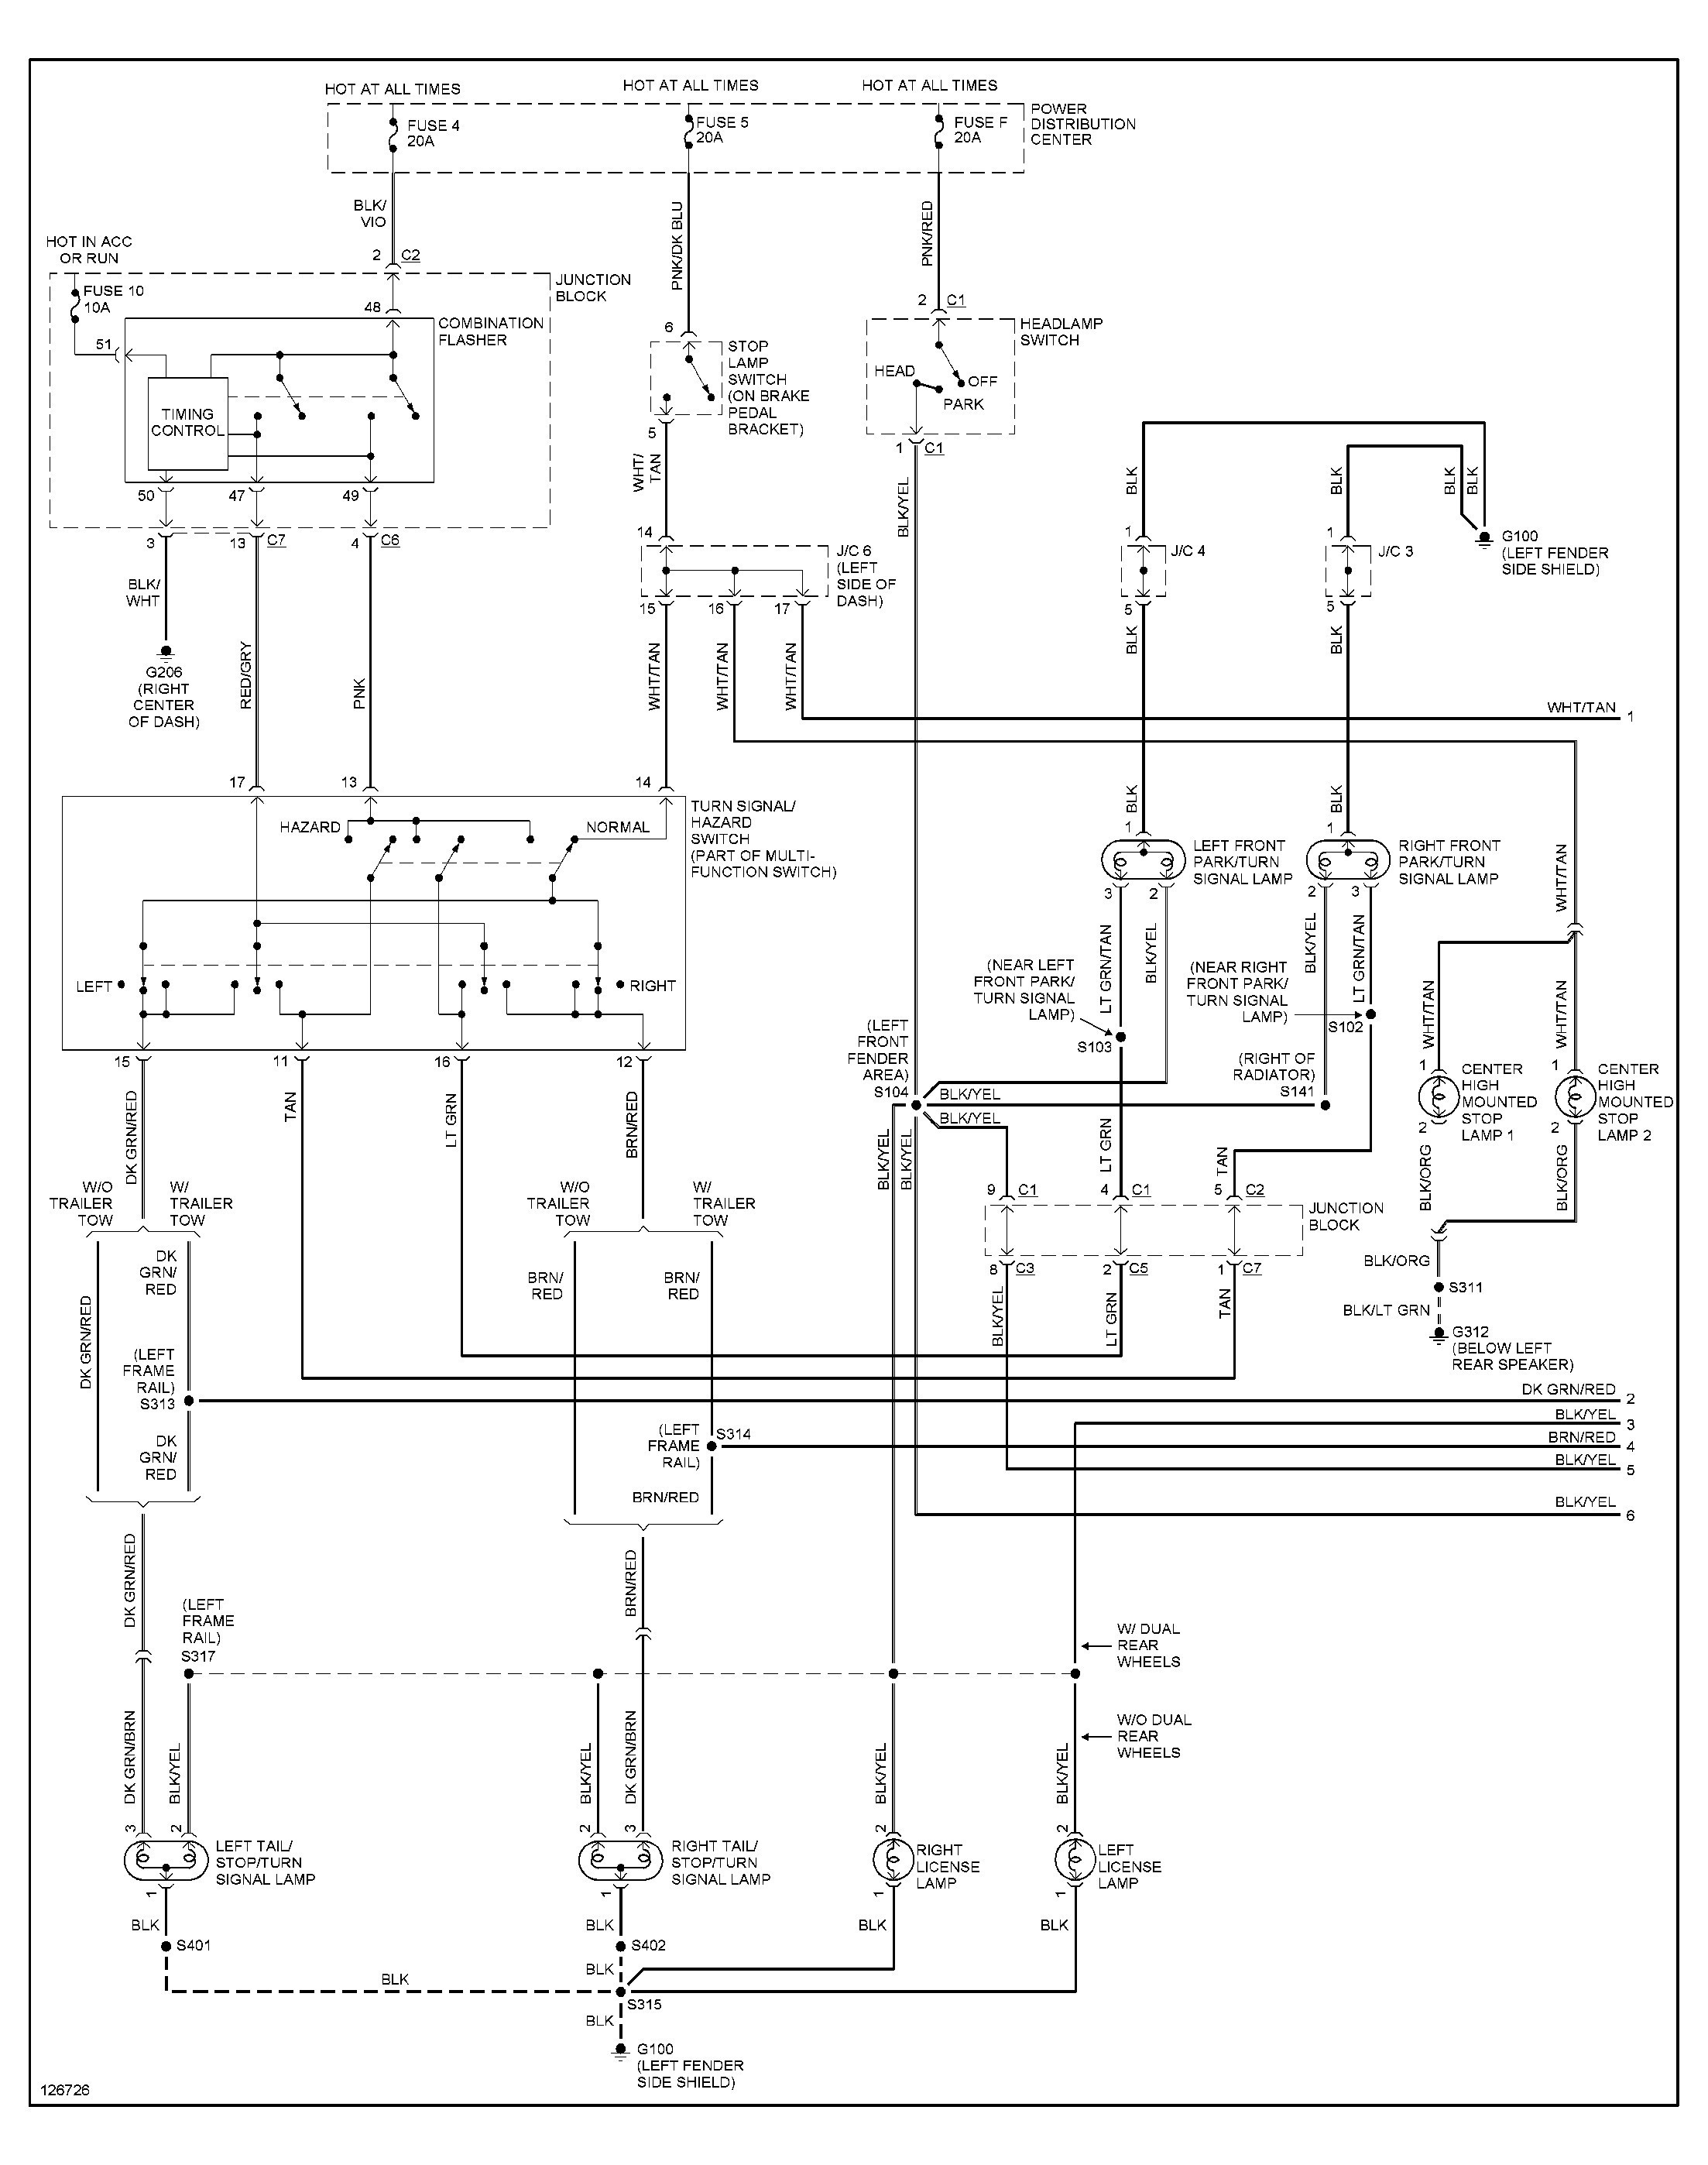 2003 dodge ram tail light wiring diagram unique tail light wiring diagram diagram of 2003 dodge ram tail light wiring diagram